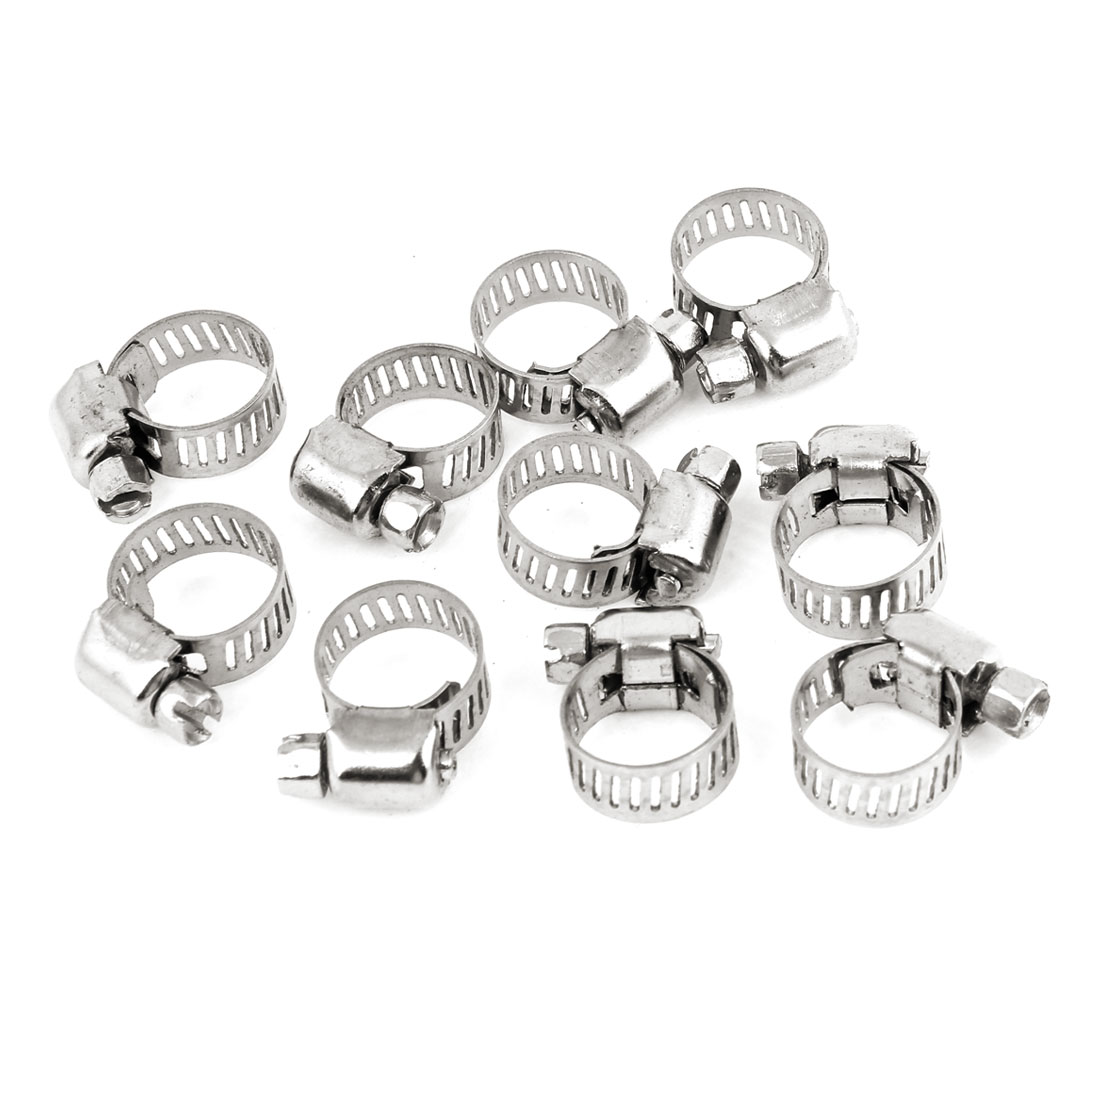 10 Pcs Silver Tone Adjustable Metallic 13mm to 19mm Pipes Hose Clamp Clip